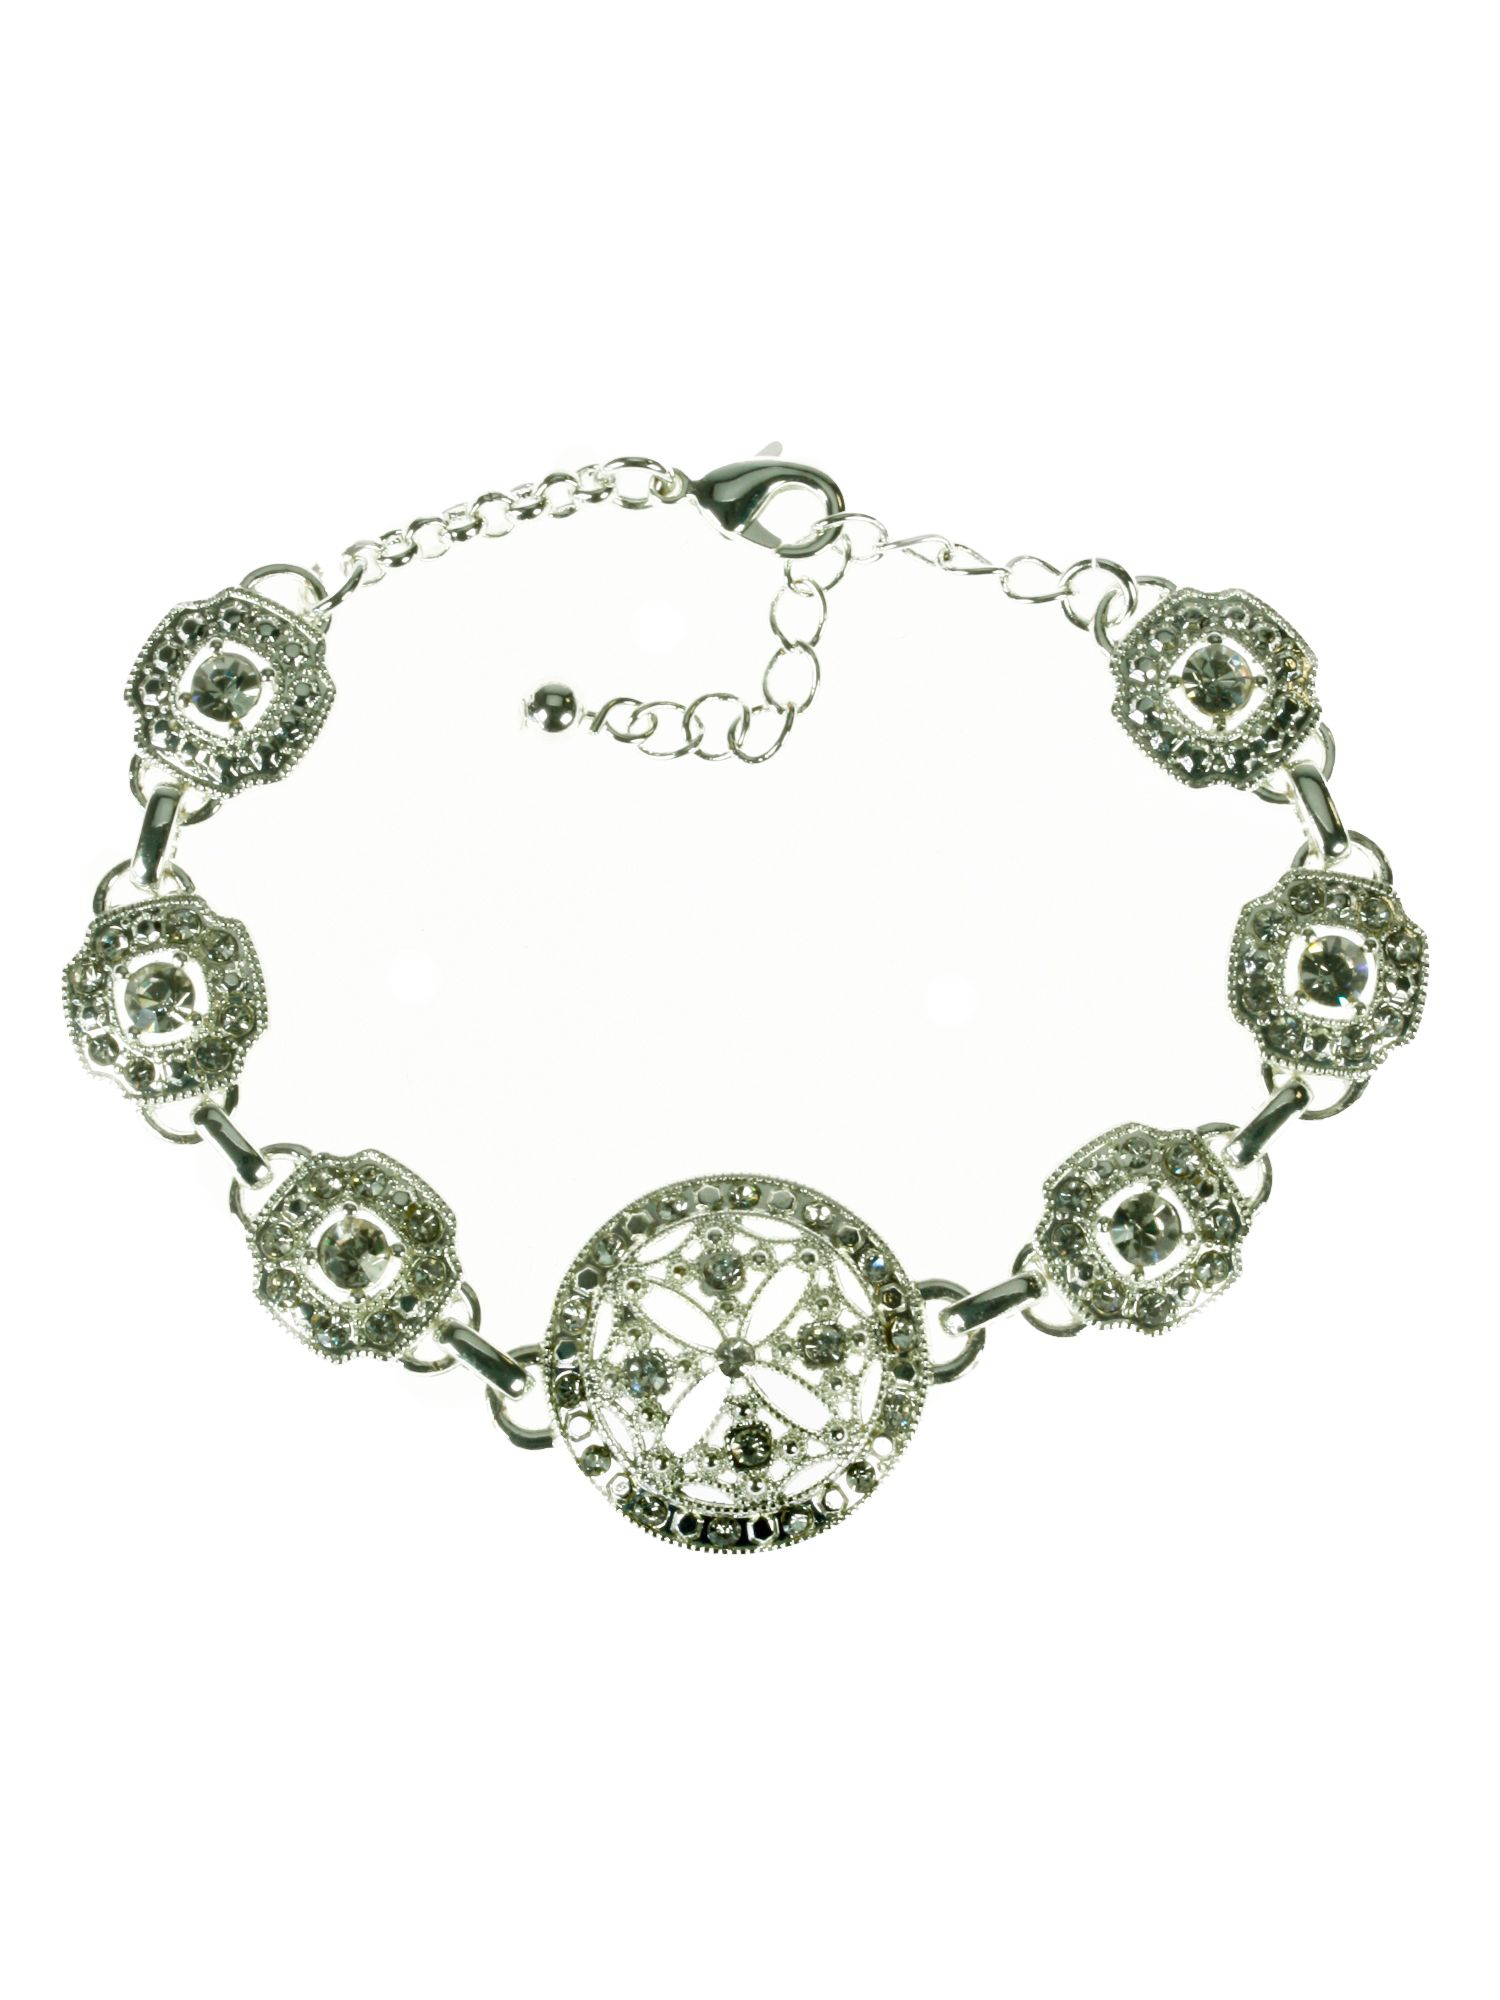 Rhodium plated filigree style crystal bracelet